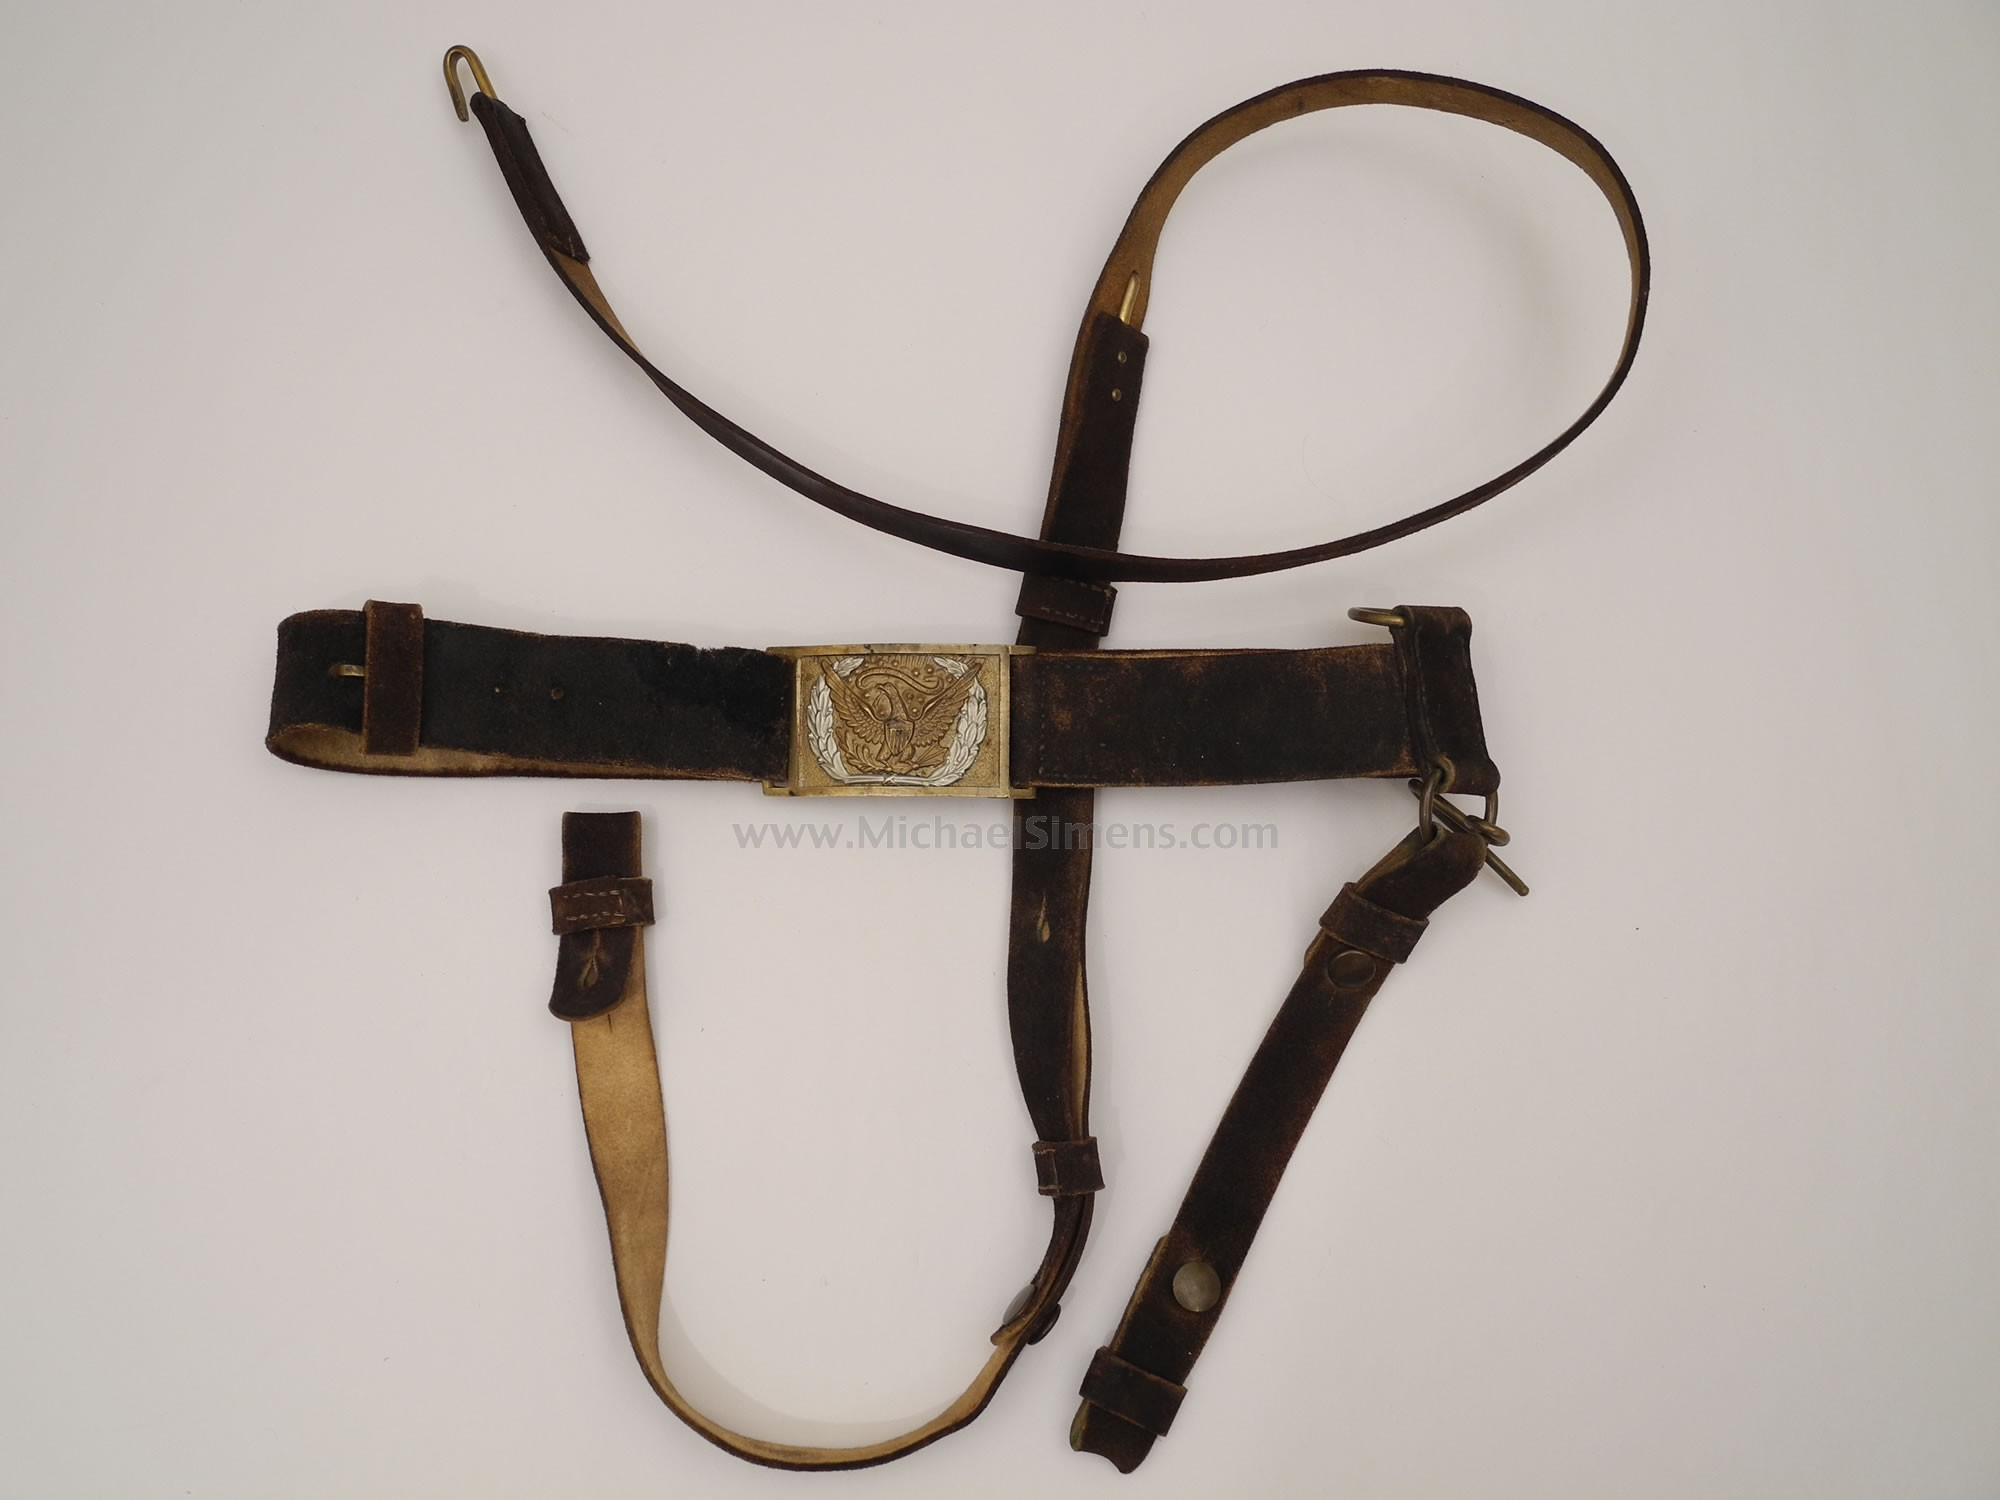 Civil War Cavalry Belt Rig - Civil War Artifact Appraiser, Dealer